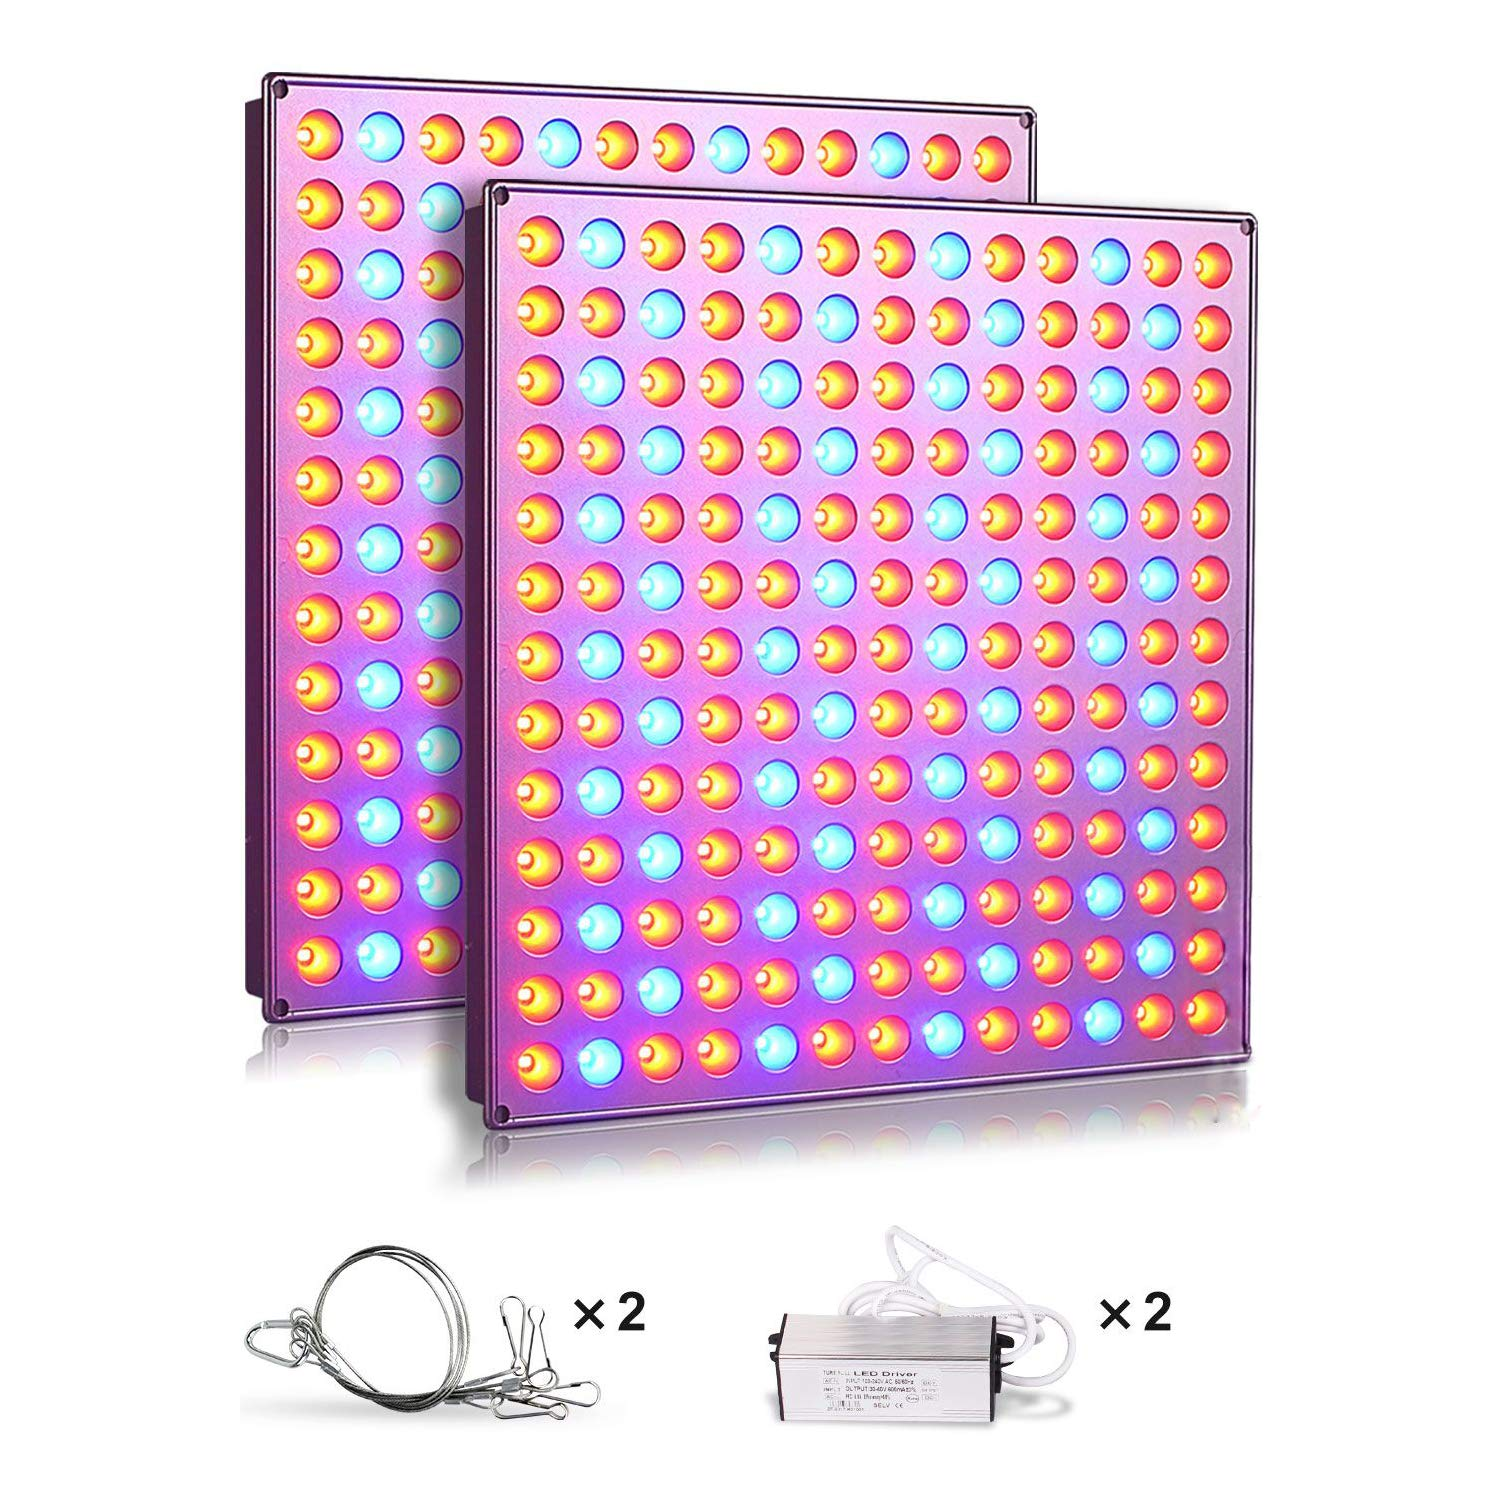 Roleadro LED Grow Lights for Indoor Plants, 75w Plant Lights with Red & Blue Spectrum Grow Lamp for Hydroponic, Seedling, Succulents, Veg and Flower (2 Packs) by Roleadro